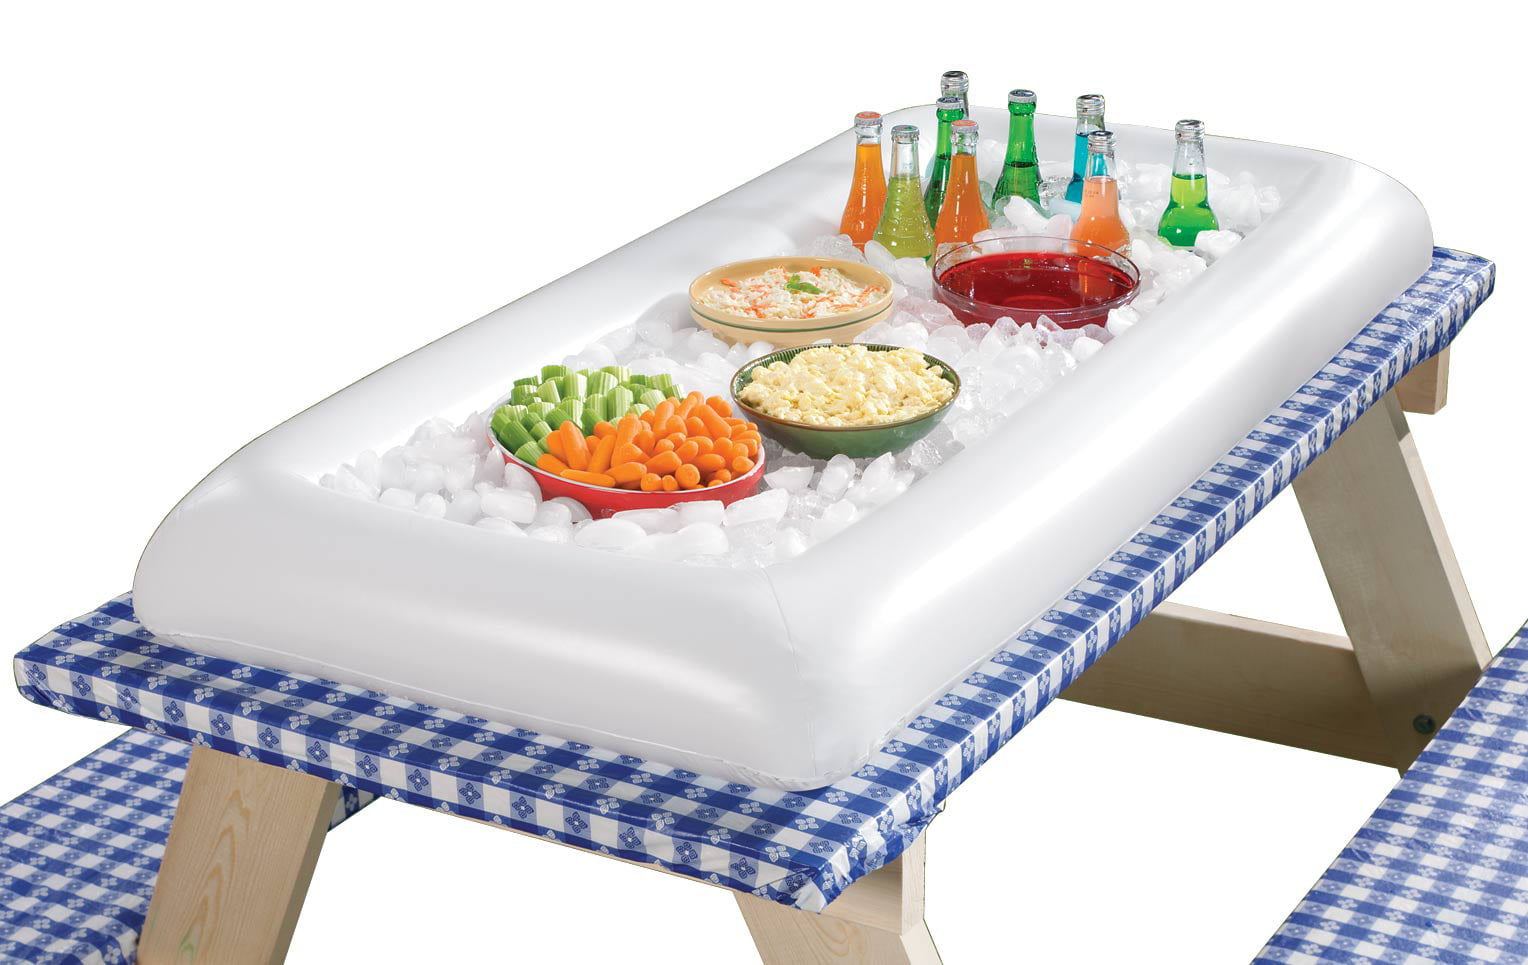 Inflatable Tabletop Ice Cooler Table Design Ideas